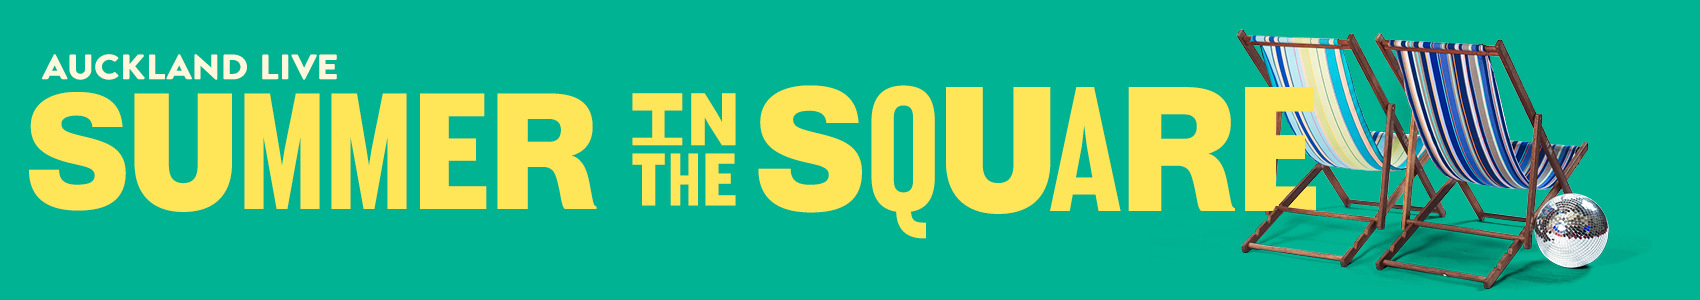 Summer in the Square - Media Release